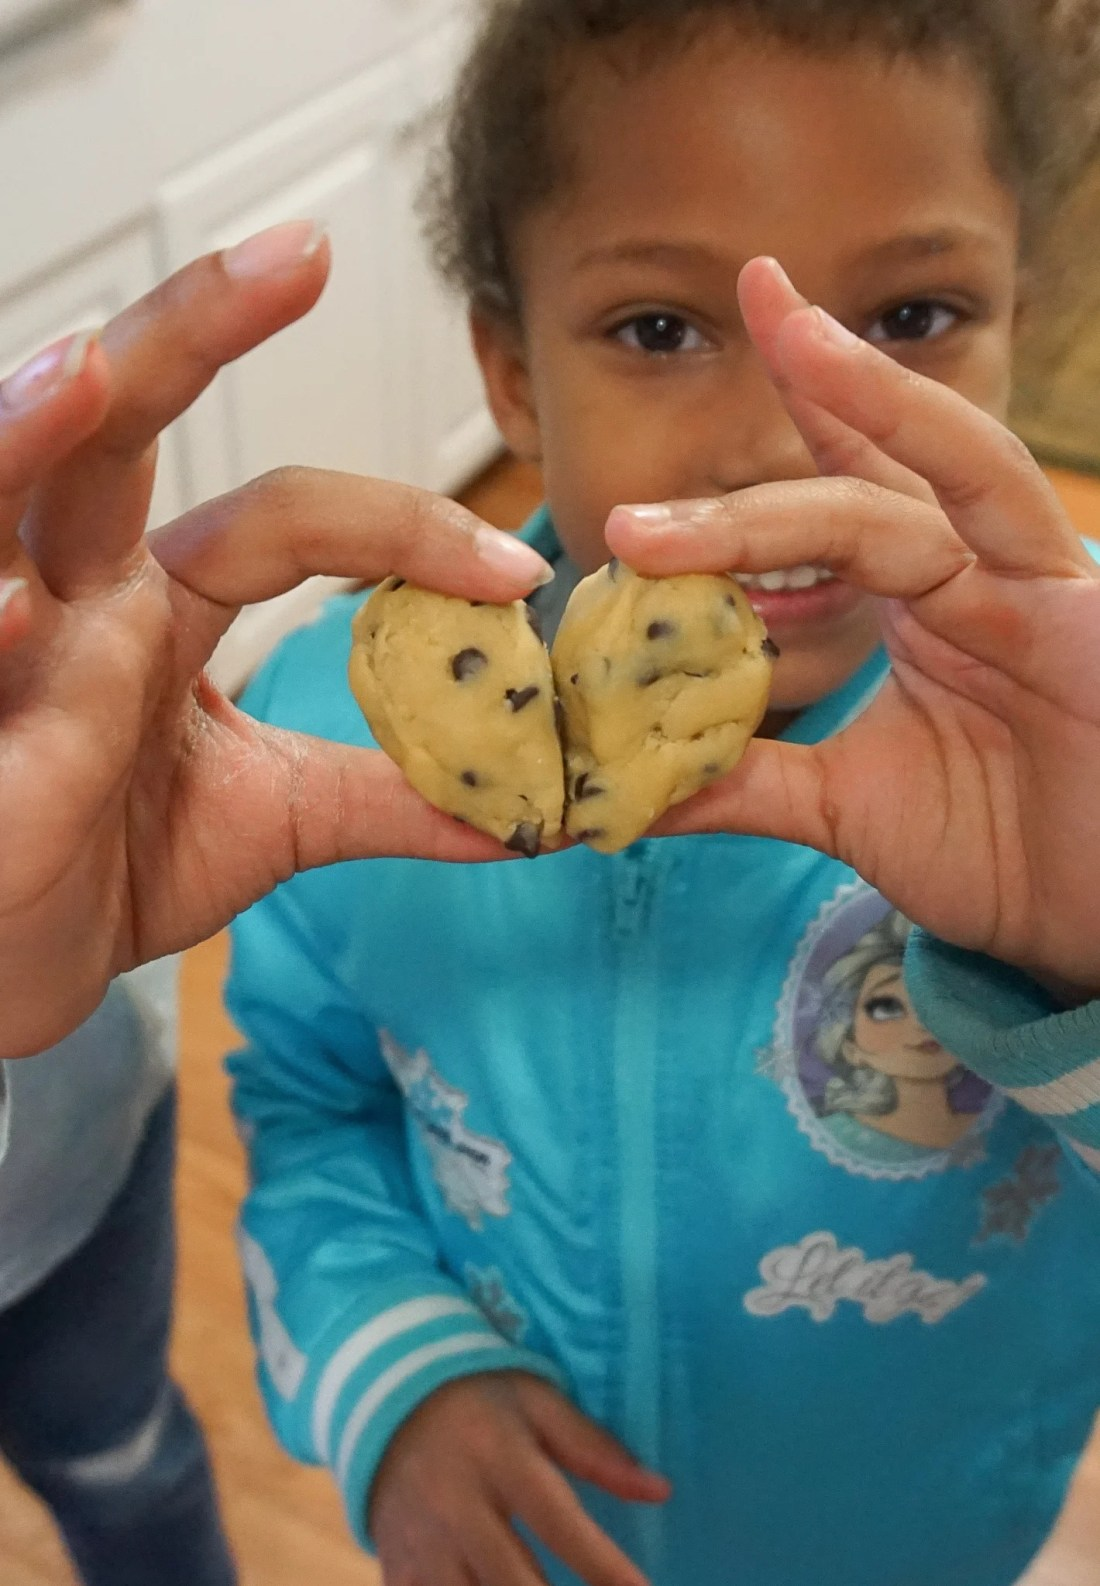 The Future is In Good Hands Heart Cookies. Learn more about how we baked cookies to bring our community together.